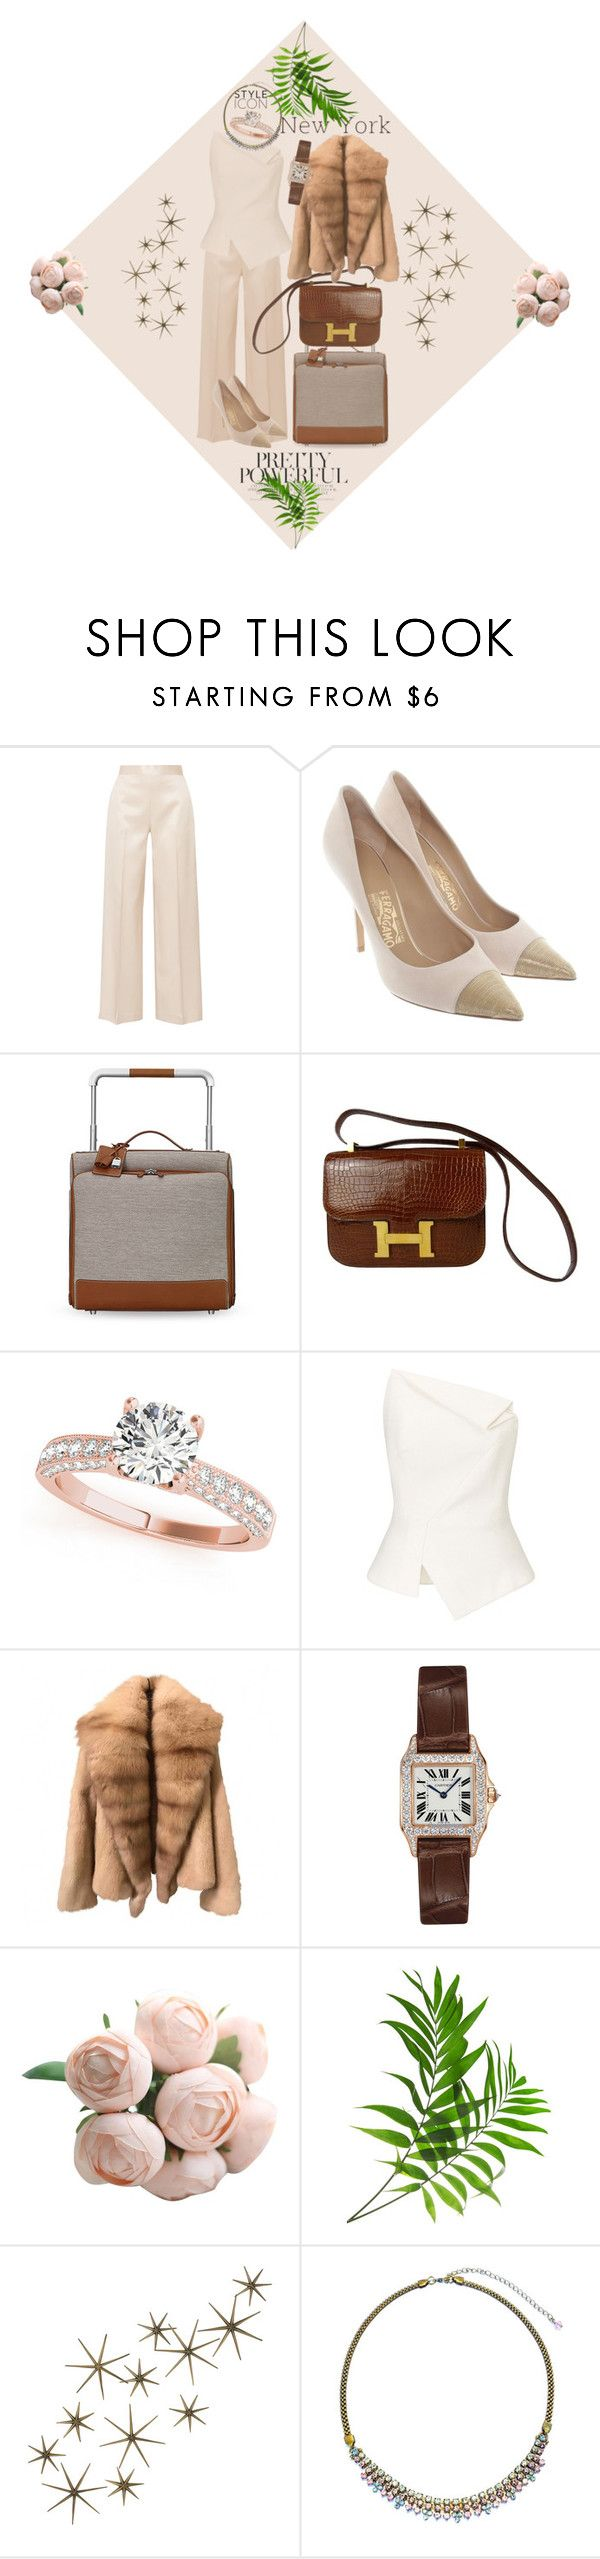 🌴Hello New York 🌴 by dns328 on Polyvore featuring Roland Mouret, The Row, Salvatore Ferragamo, Hermès, Cartier, Sorrelli, Global Views, necklace and fashionset